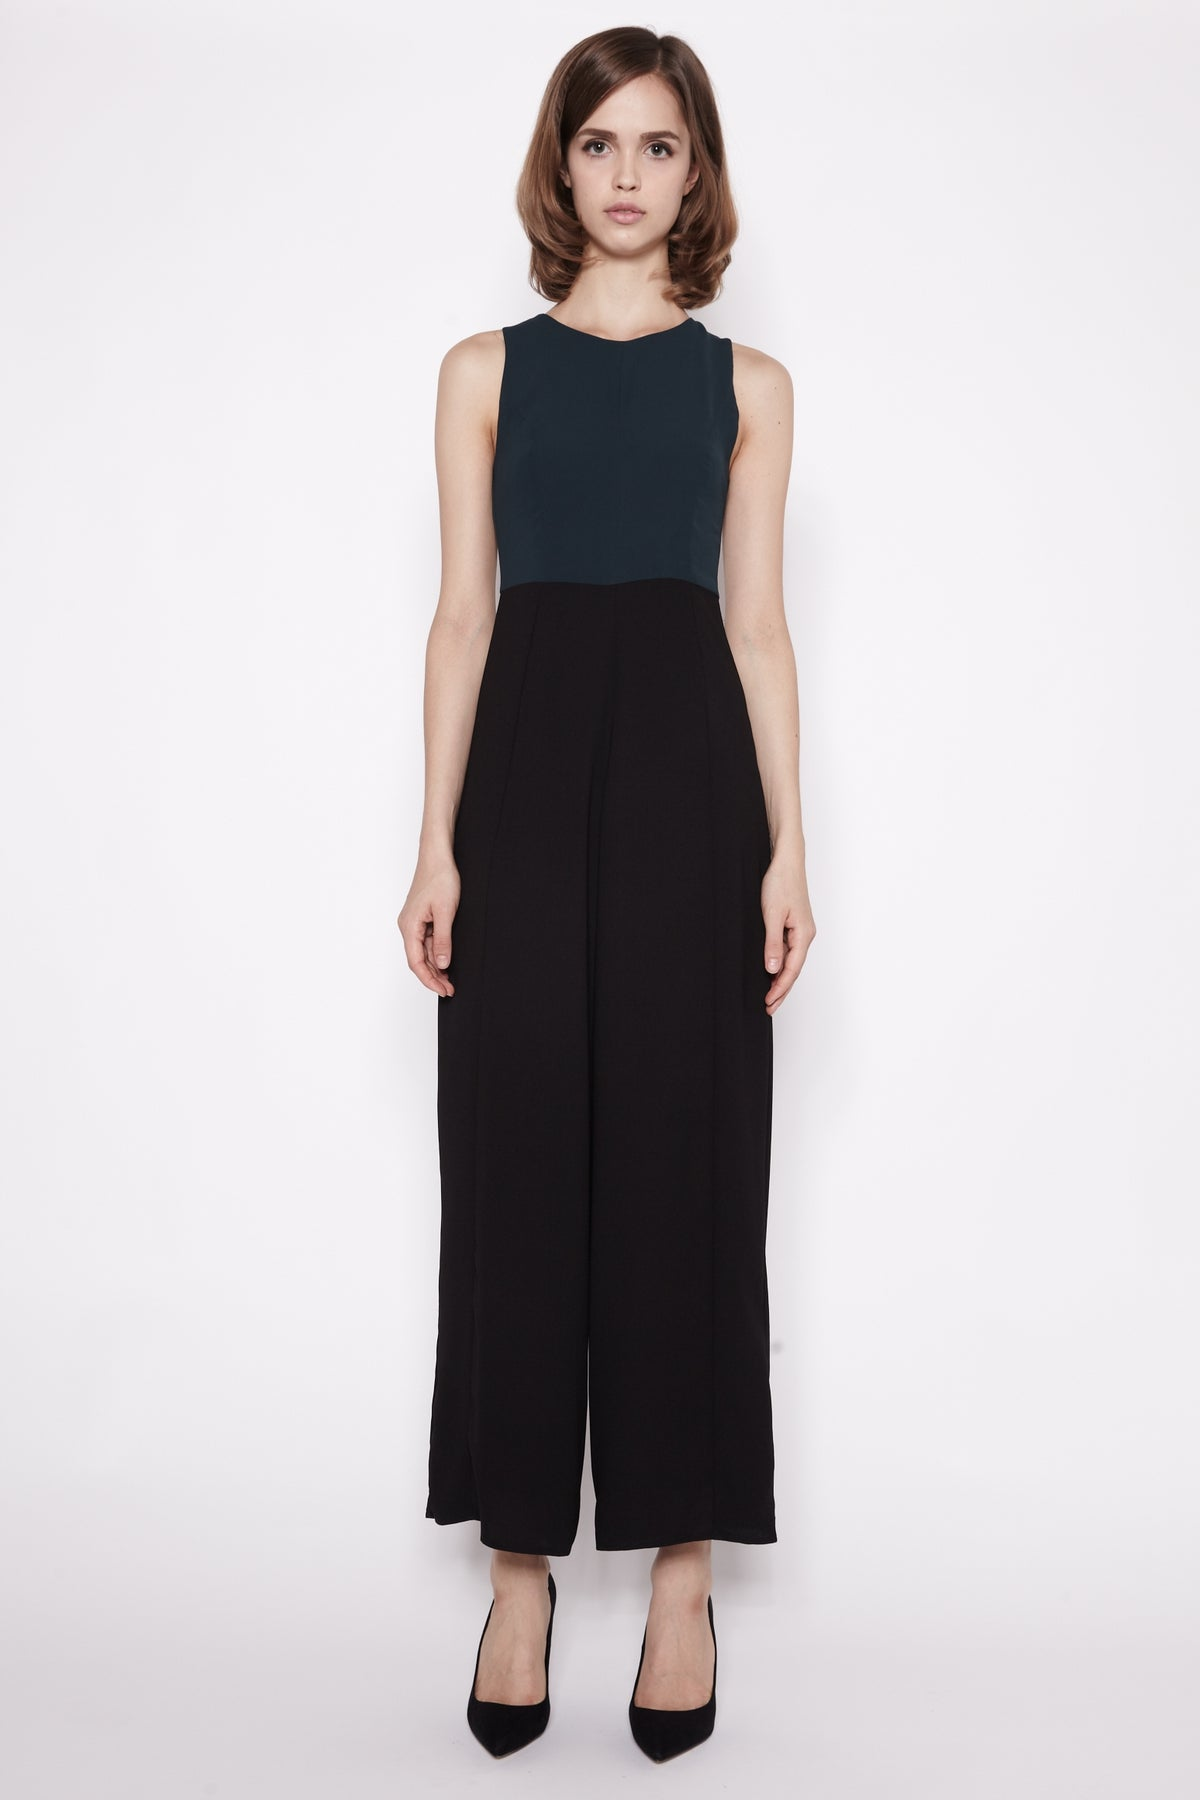 Two-Tone Jumpsuit In Emerald and Black